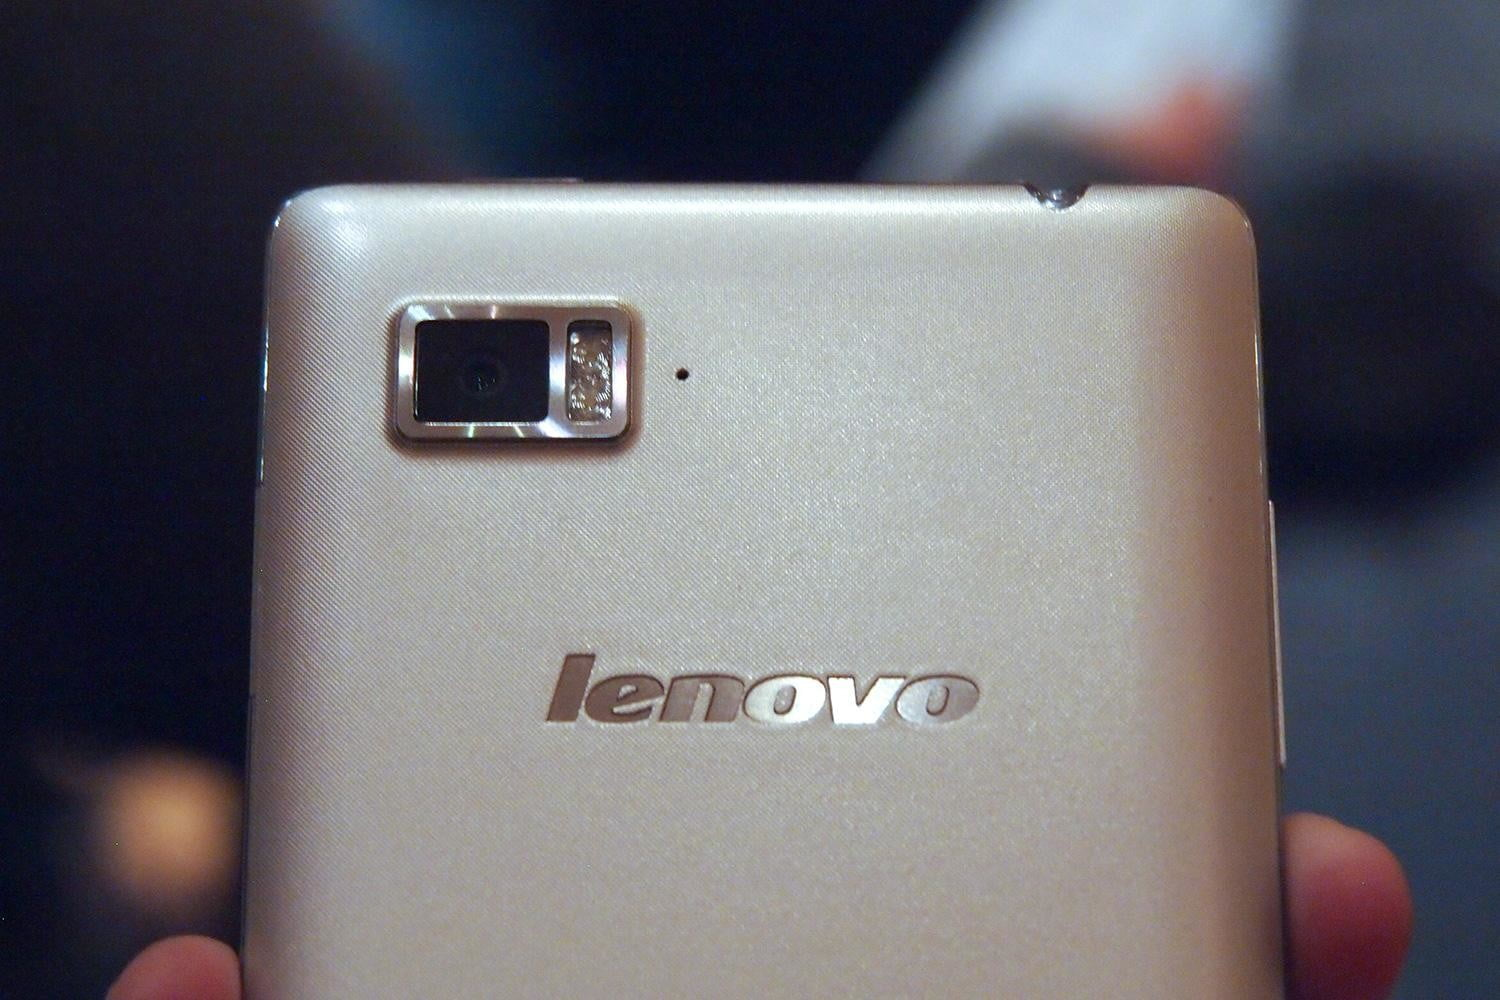 lenovo phone 2014. lenovo and lg are the smartphone firms to watch in 2014 | digital trends phone m